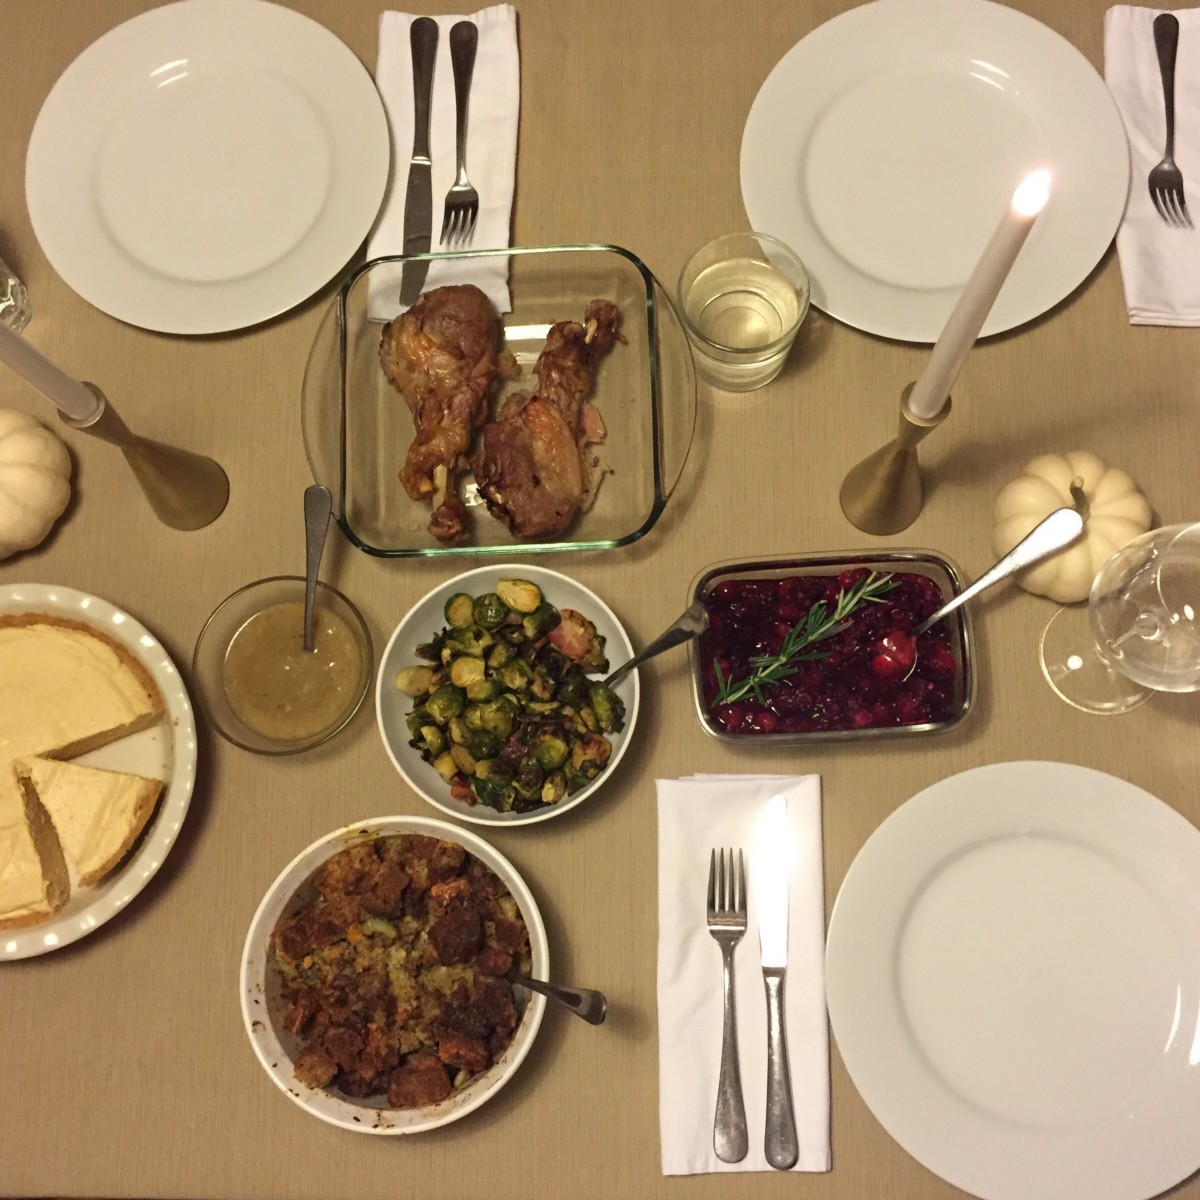 I Call It Our Thanksgiving Pre Game Its An Elaborate Feast I Cook For My Immediate Family The Week Before Thanksgiving For Someone Who Loves To Cook And